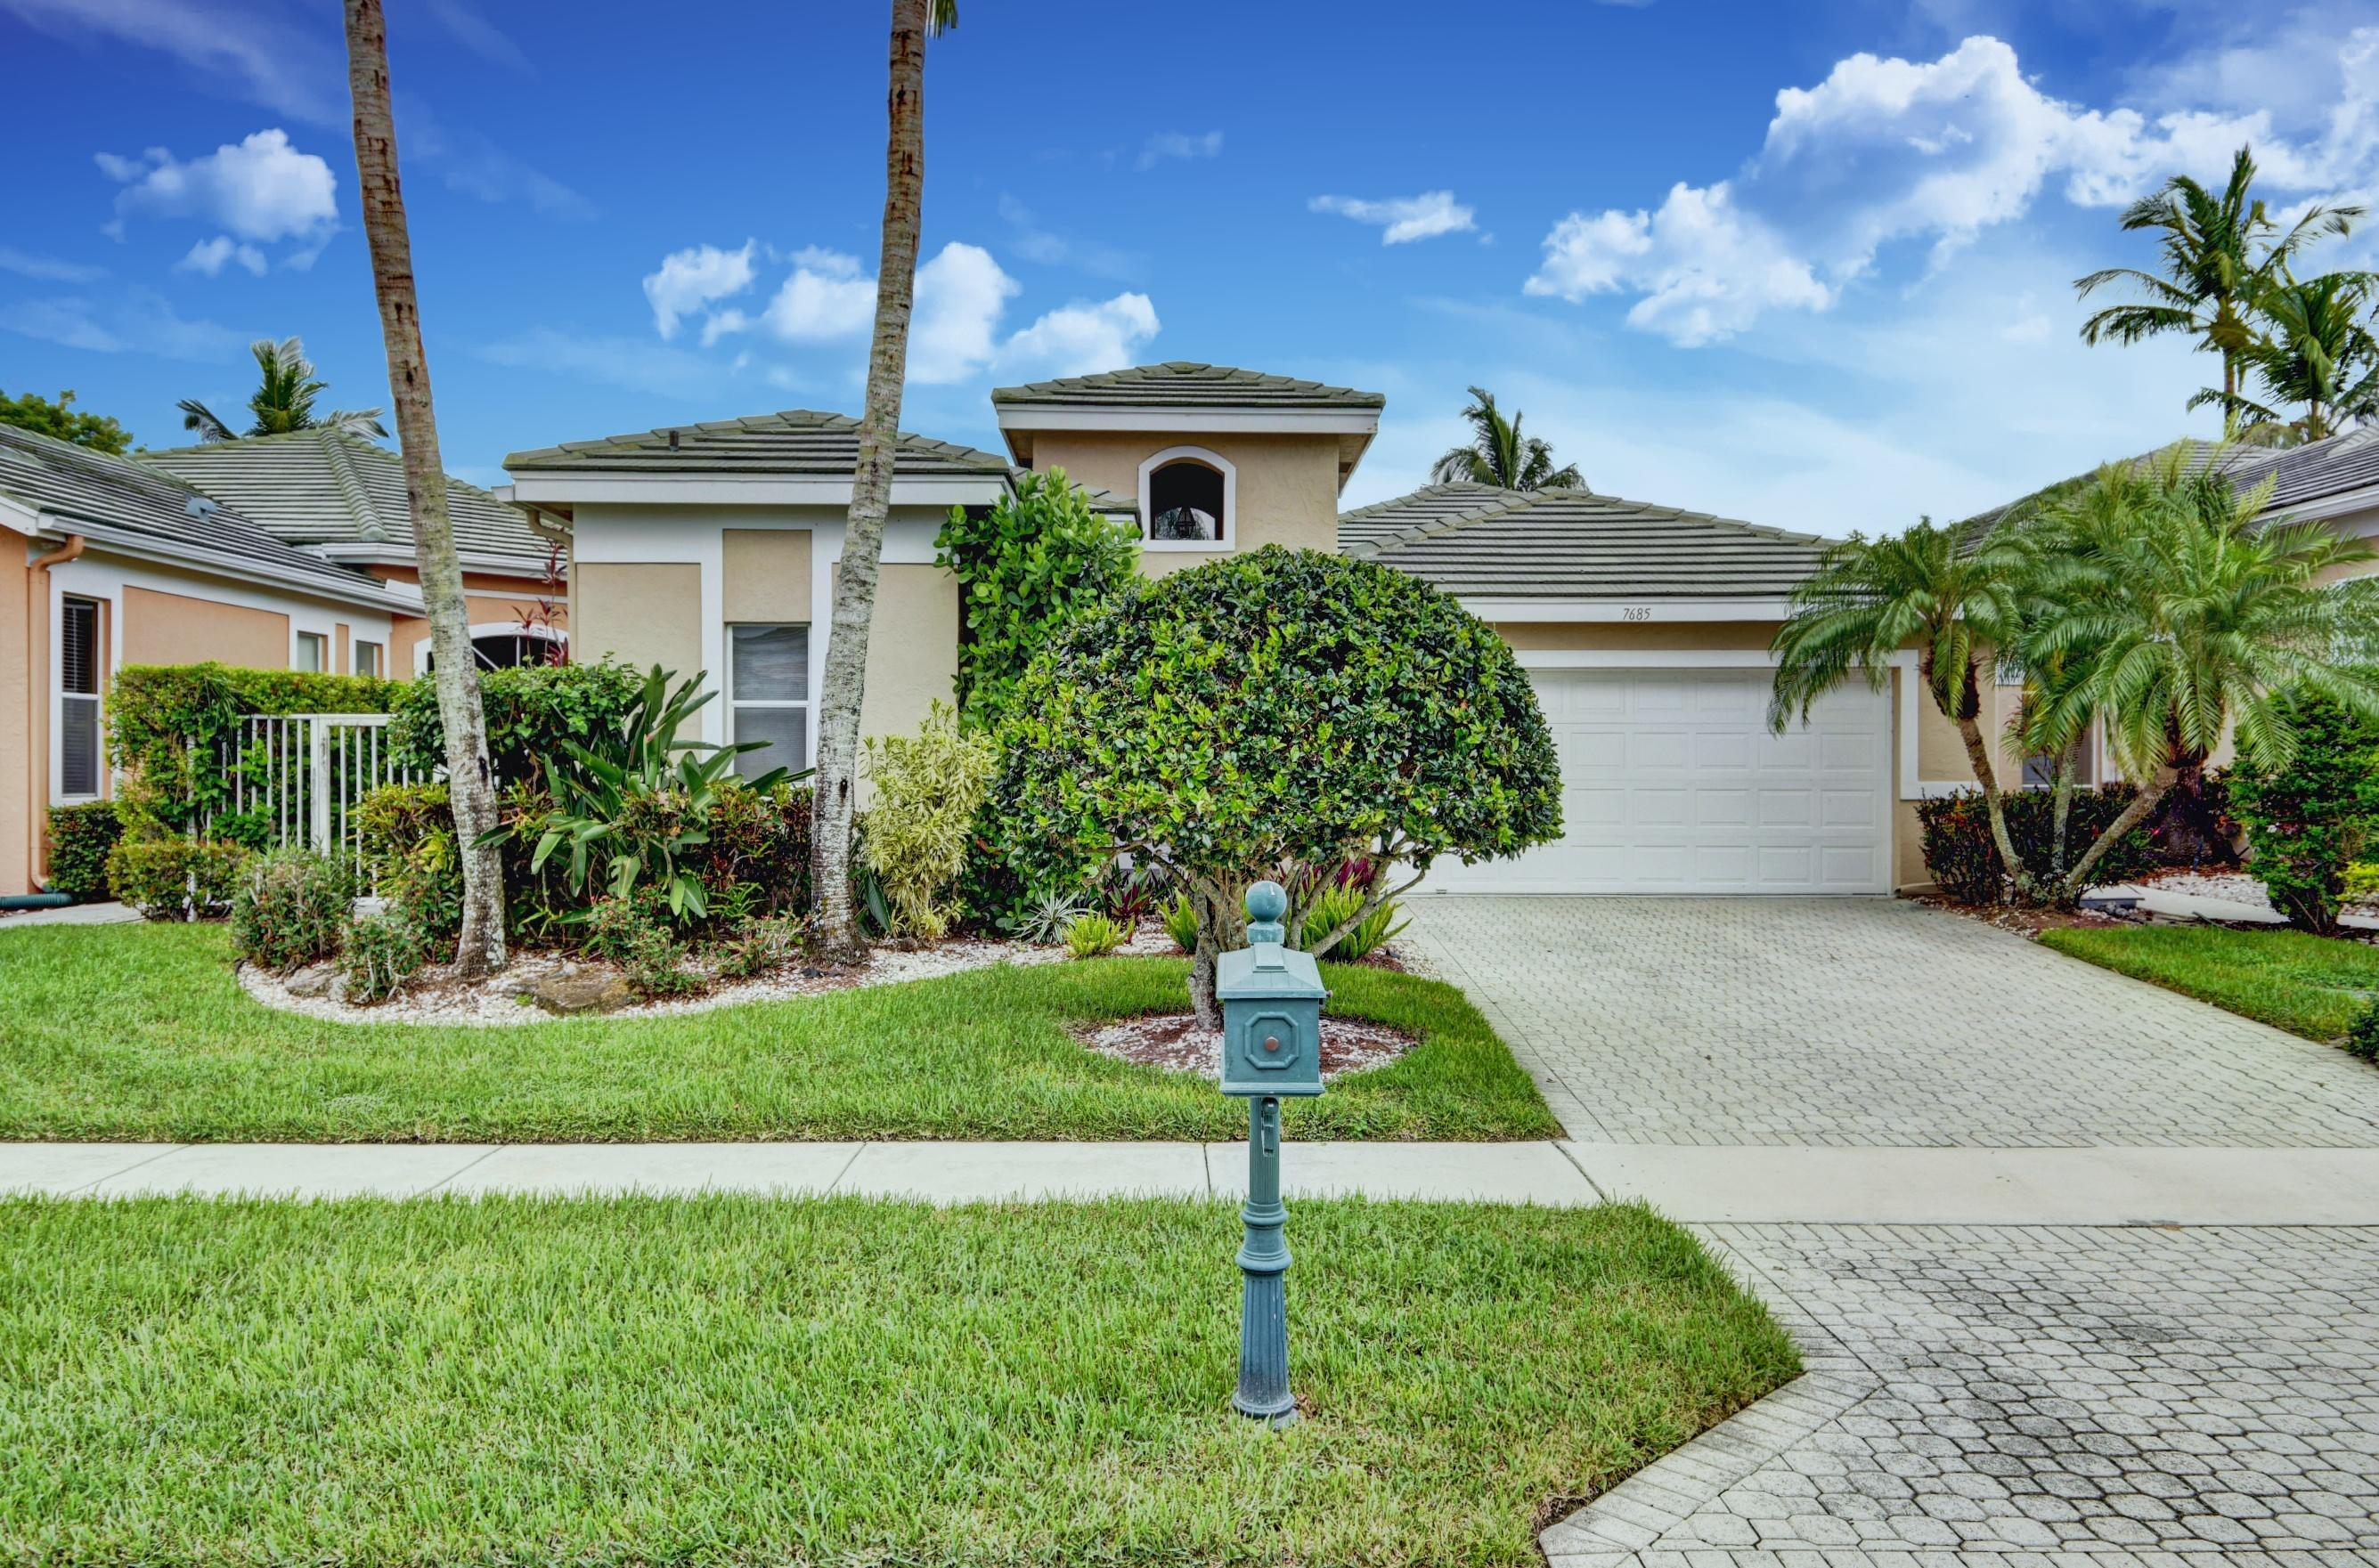 7685 Rockford Road, Boynton Beach, Florida 33472, 3 Bedrooms Bedrooms, ,3 BathroomsBathrooms,Single Family,For Sale,Aberdeen/Carrington Lakes,Rockford,1,RX-10449109